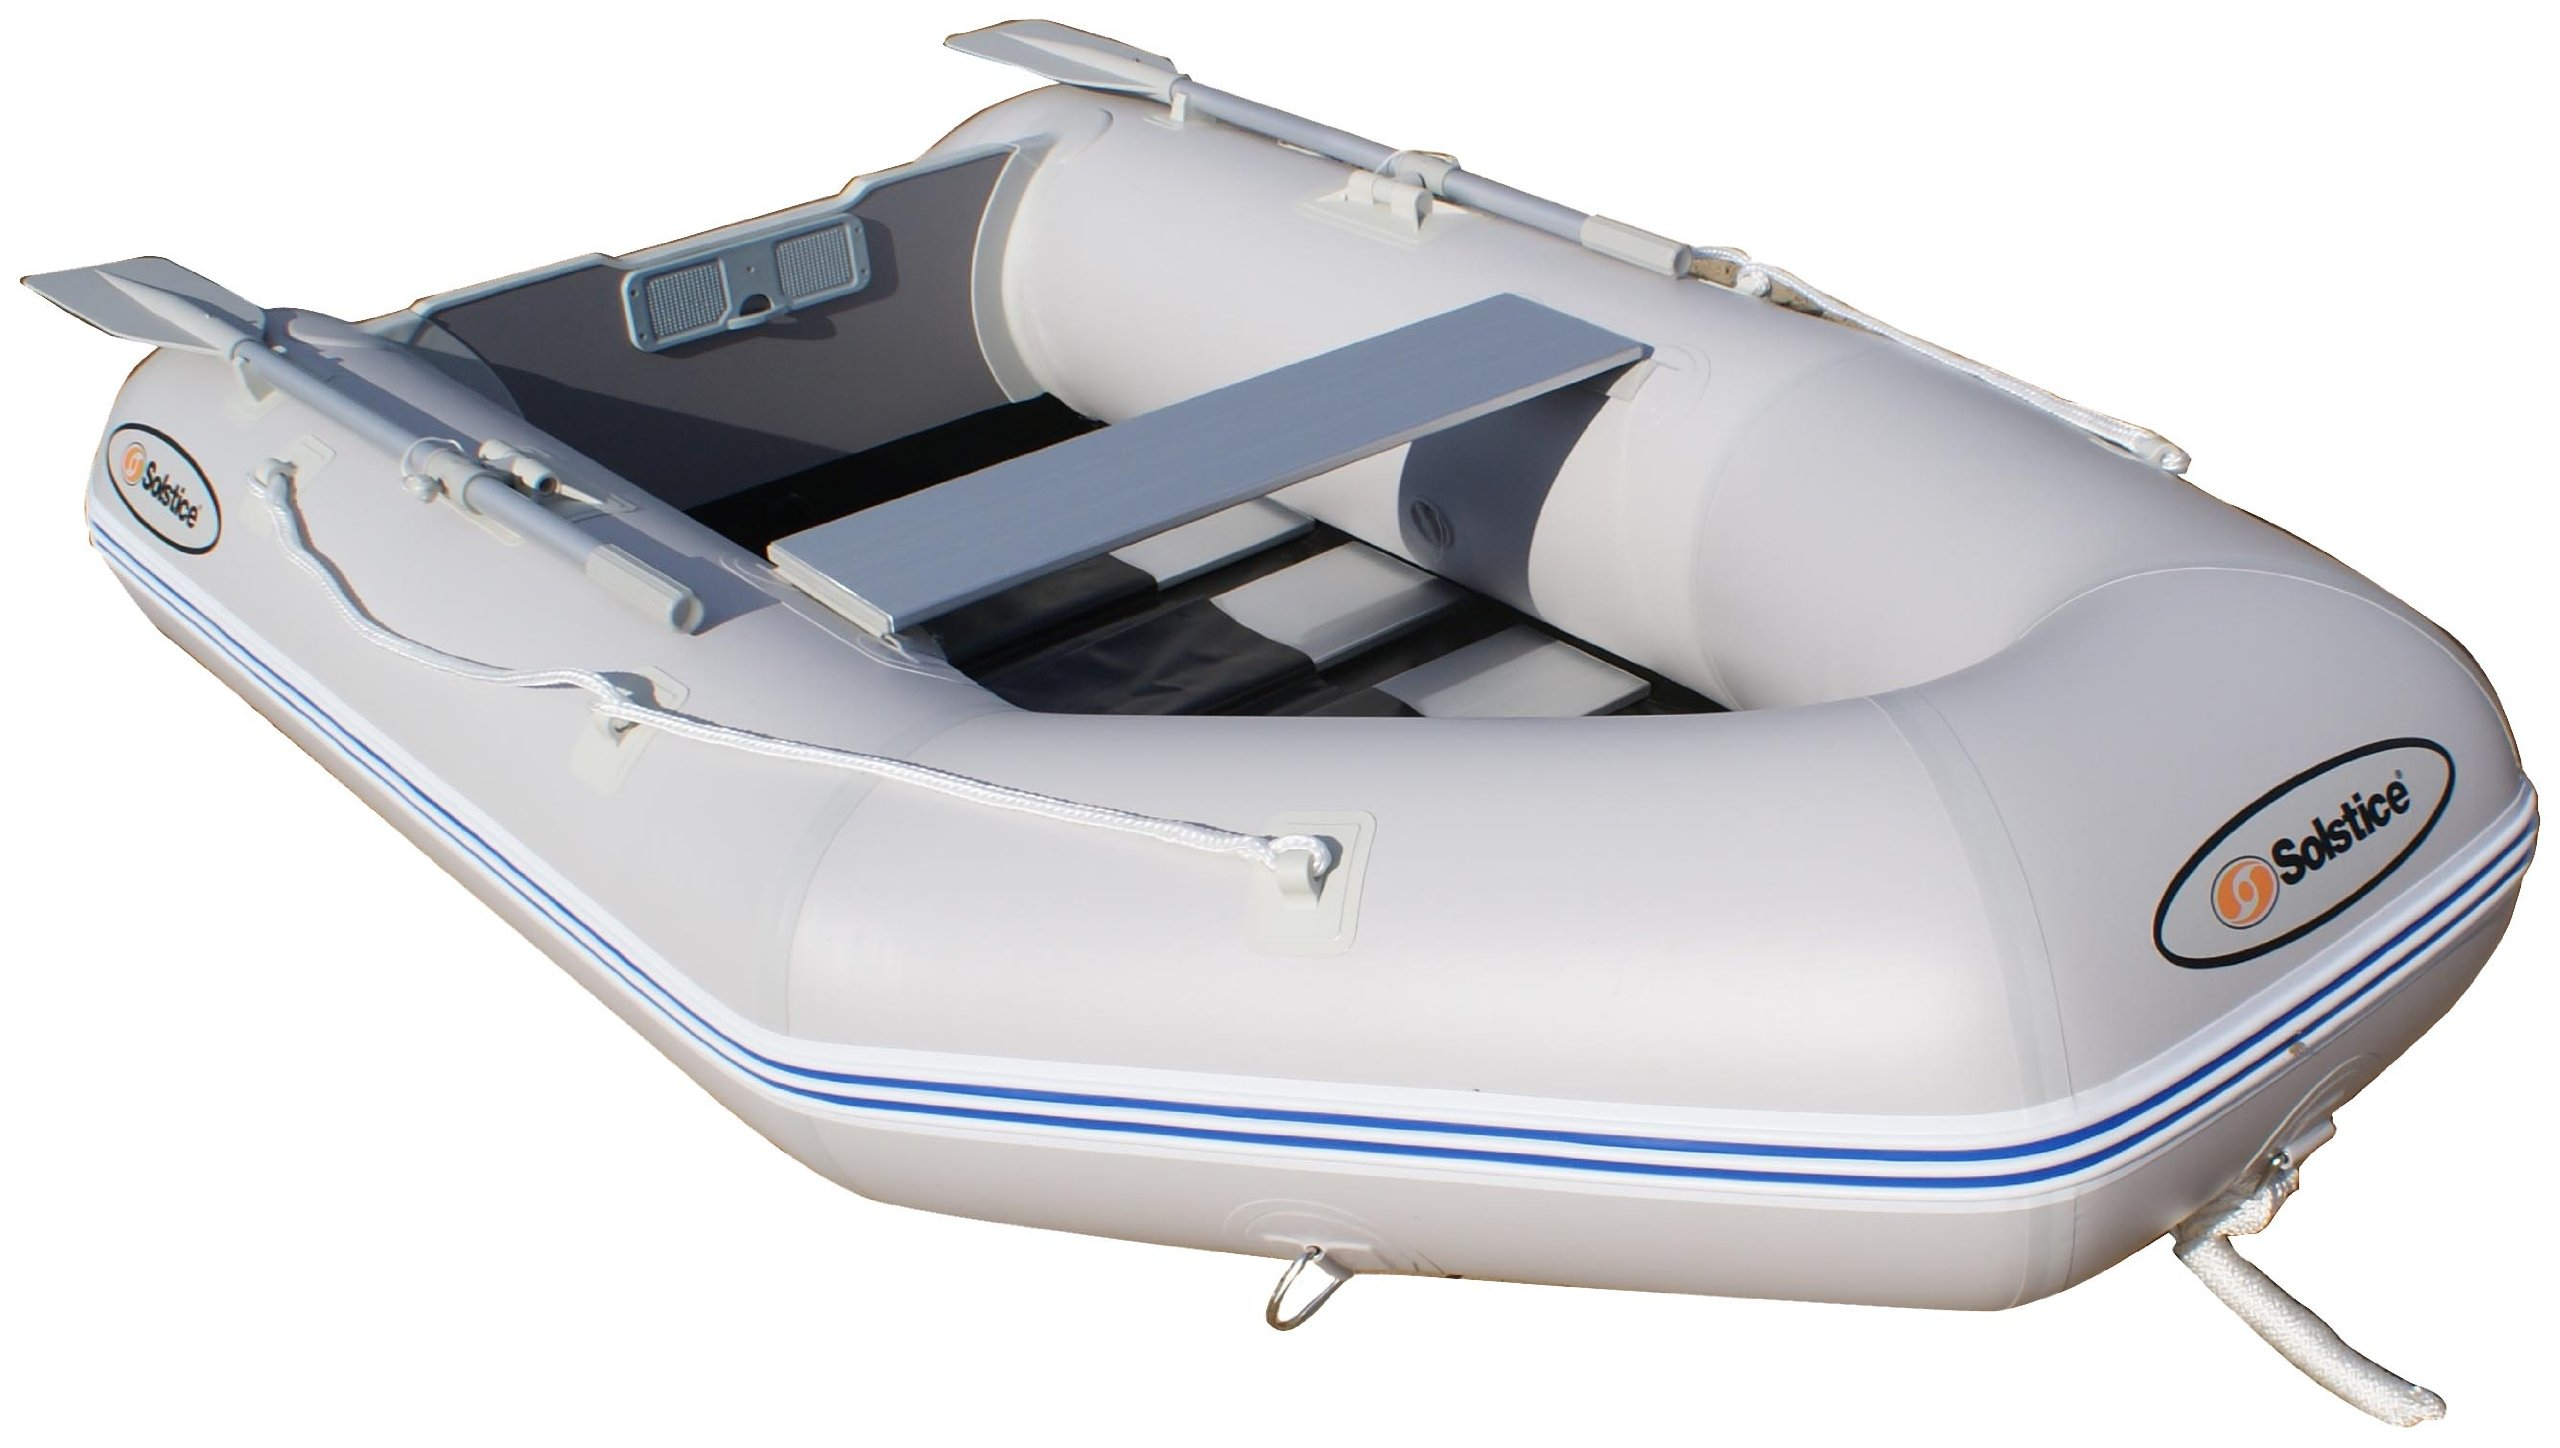 Solstice by Swimline Sportster 3-Person Runabout by Solstice